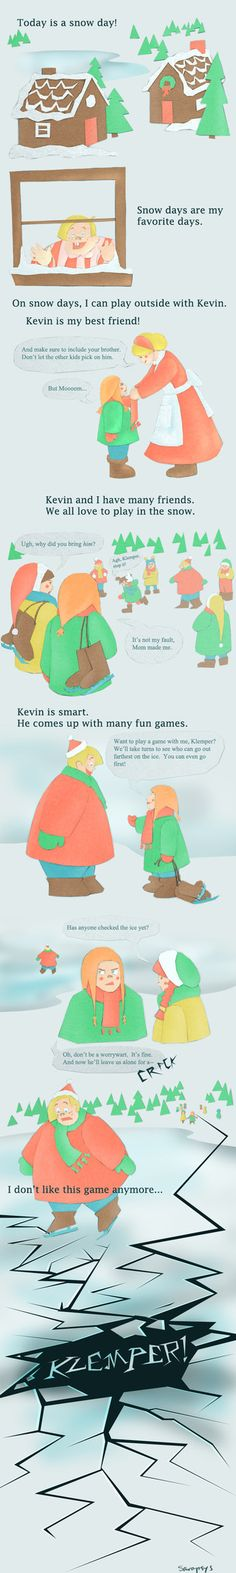 As You Were: Klemper's Story by Sarapsys on deviantART